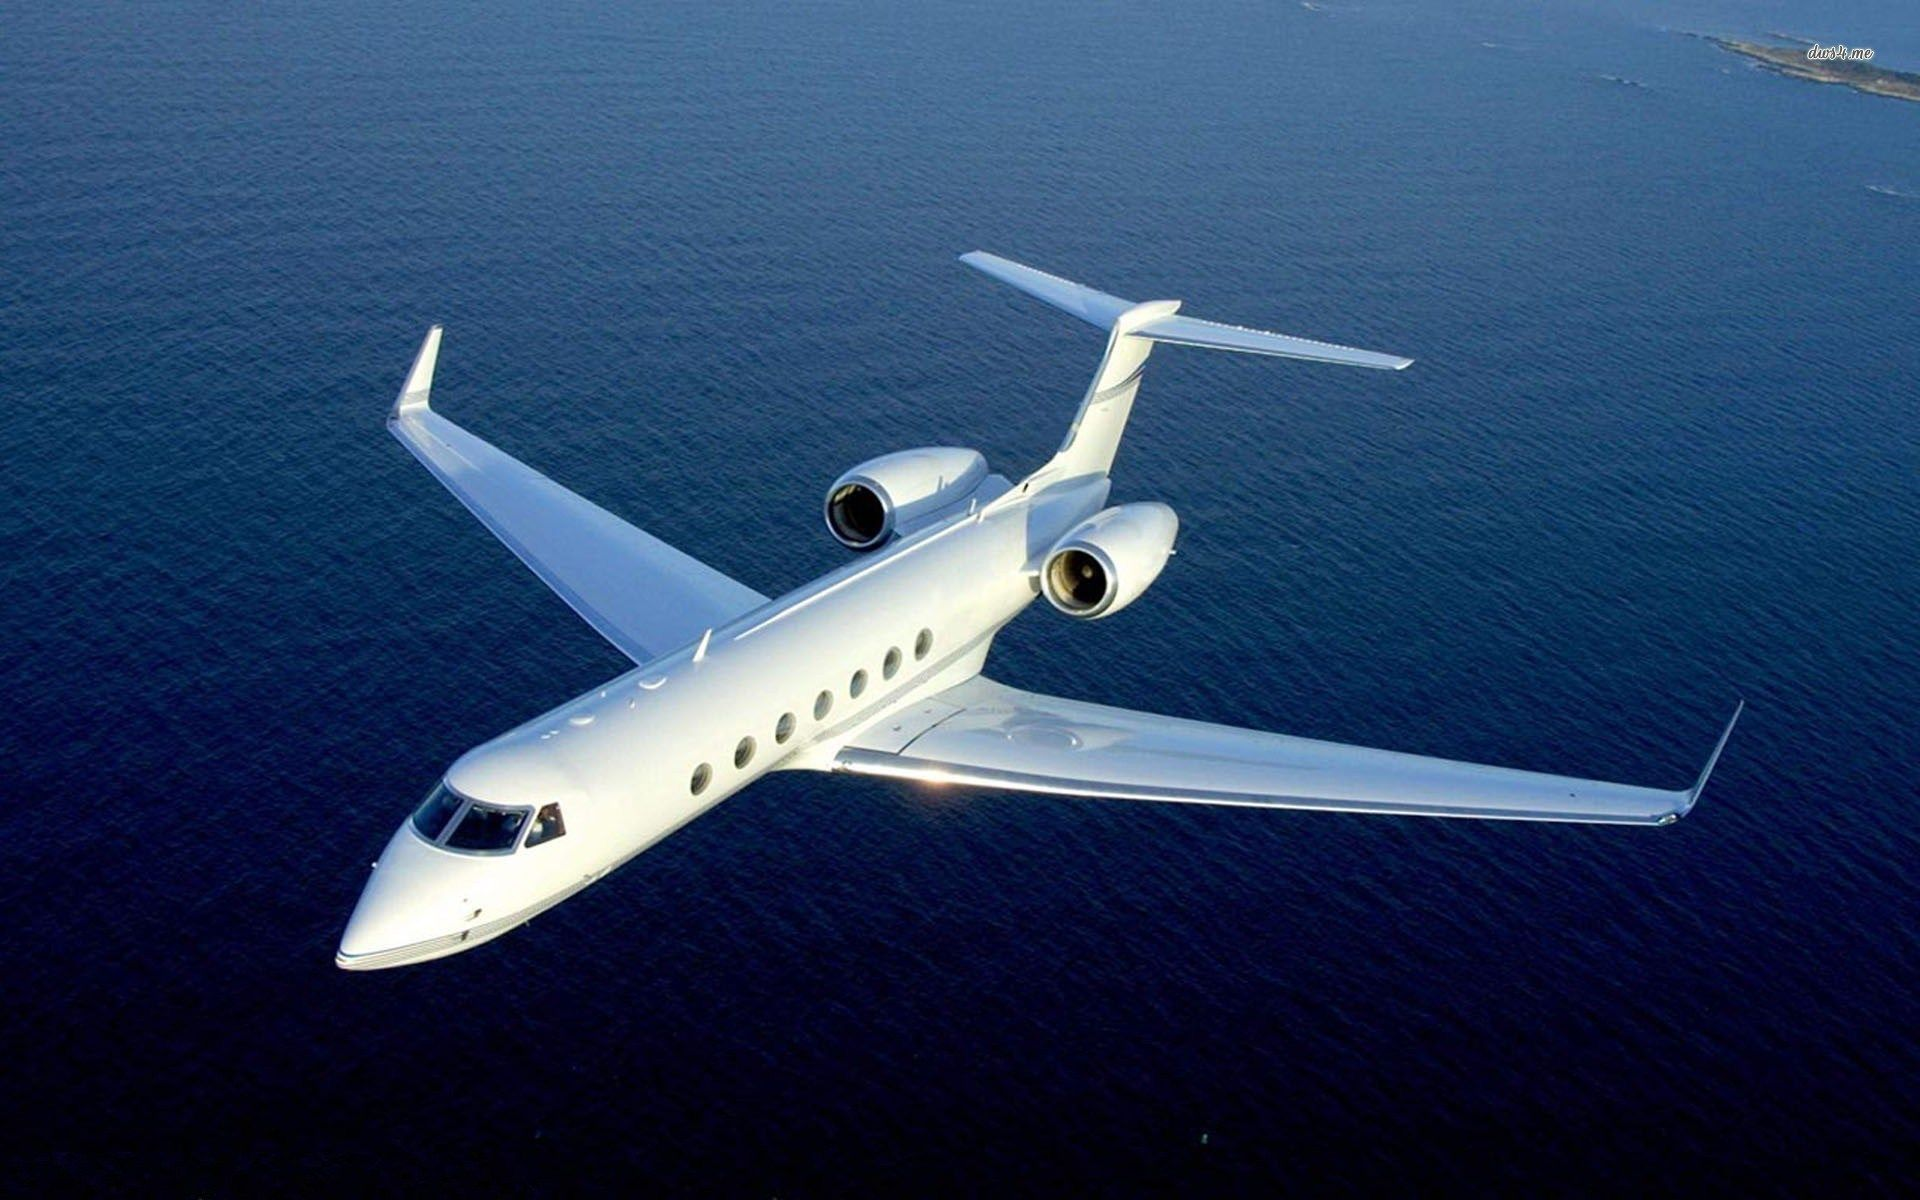 Widescreen Backgrounds Leer Jet 1920x1200 305 Kb Private Jet Private Jet Travel Jet